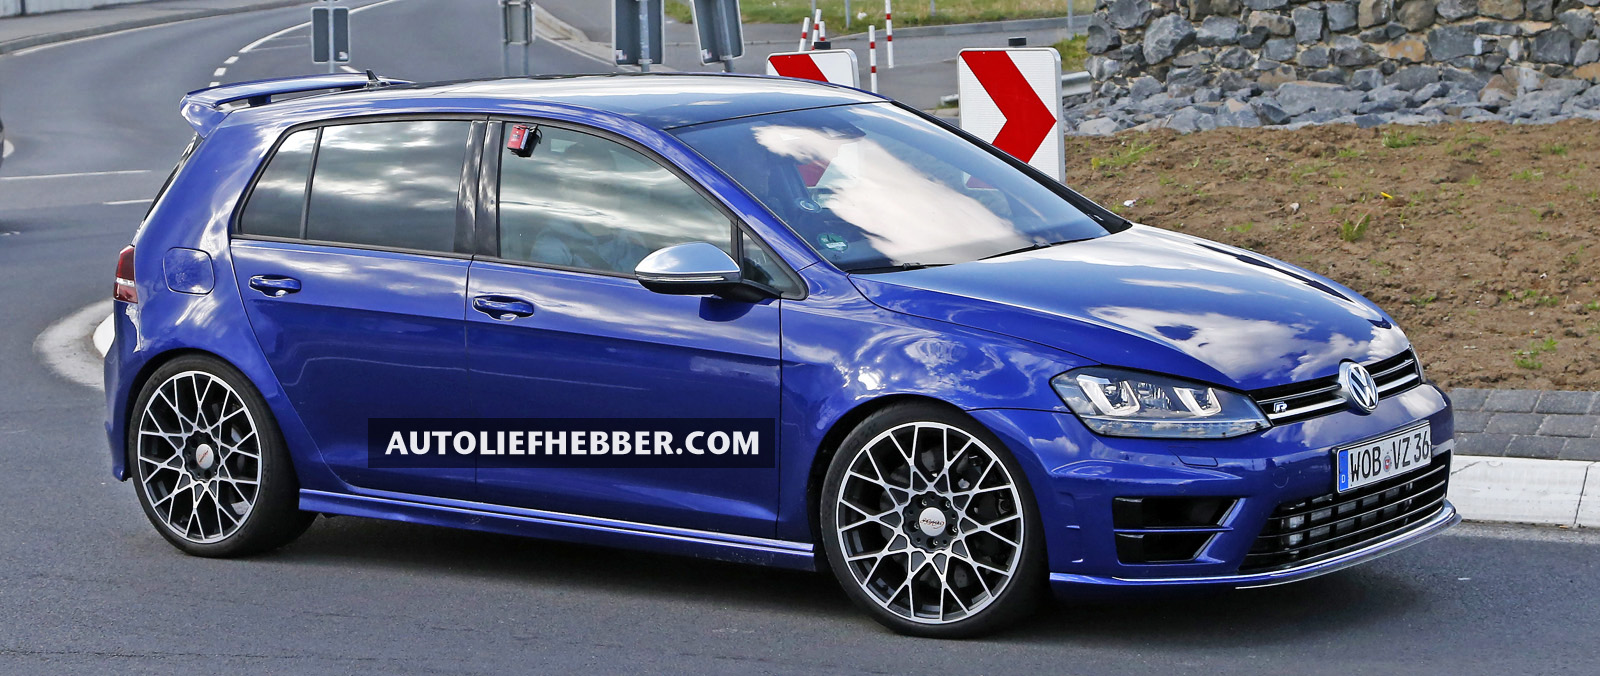 Volkswagen Golf R 400 in productie